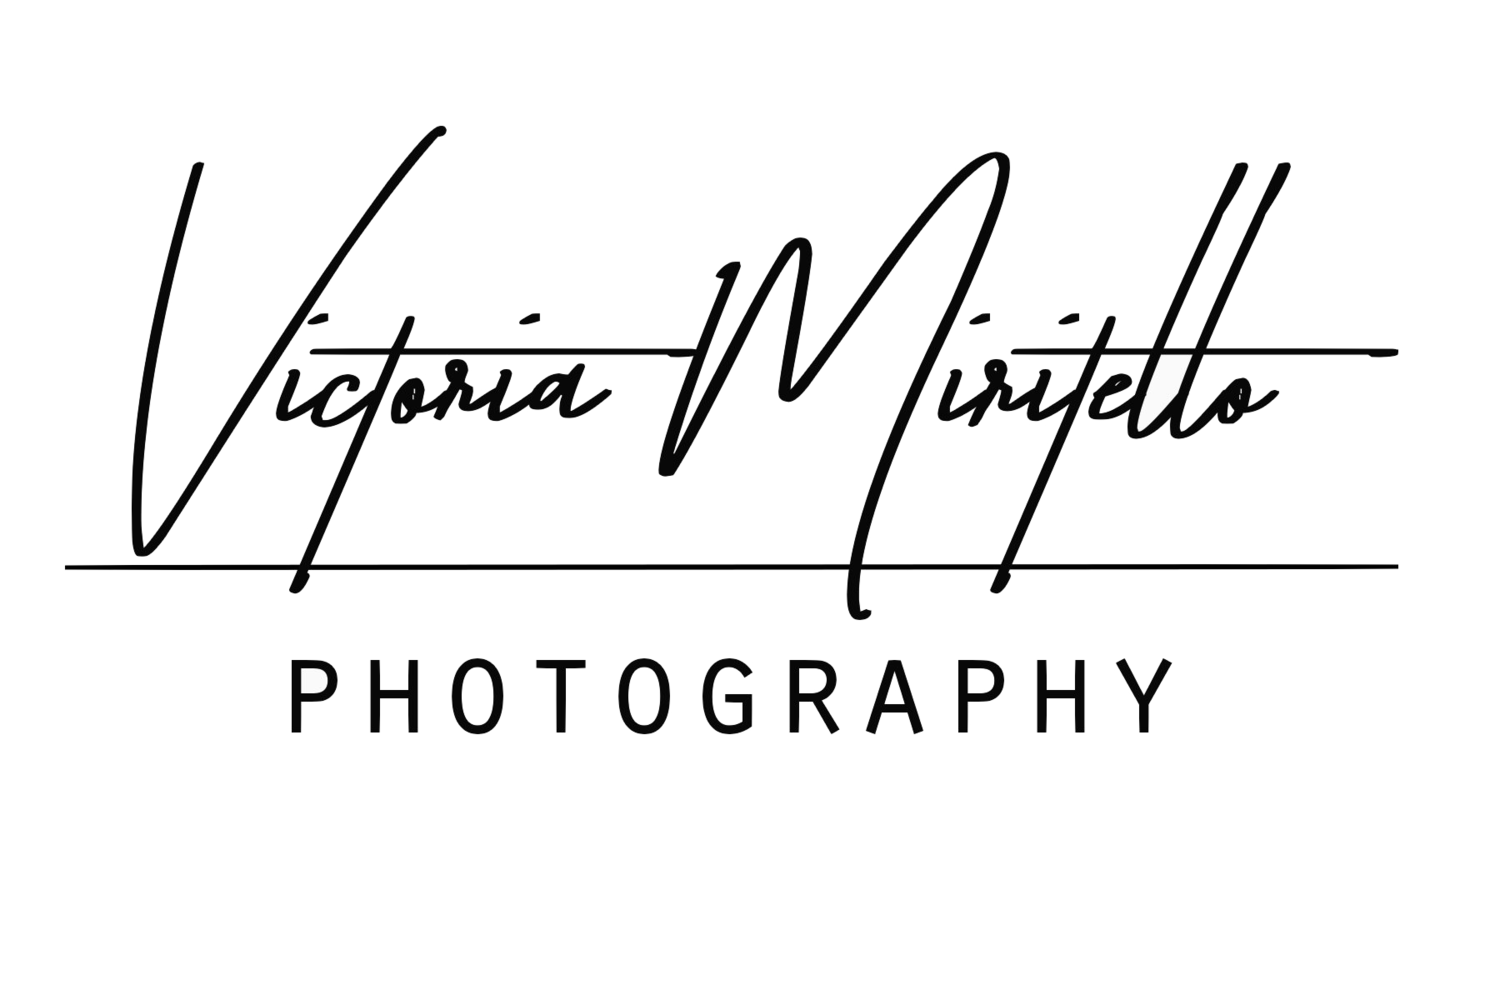 Victoria Miritello Photography